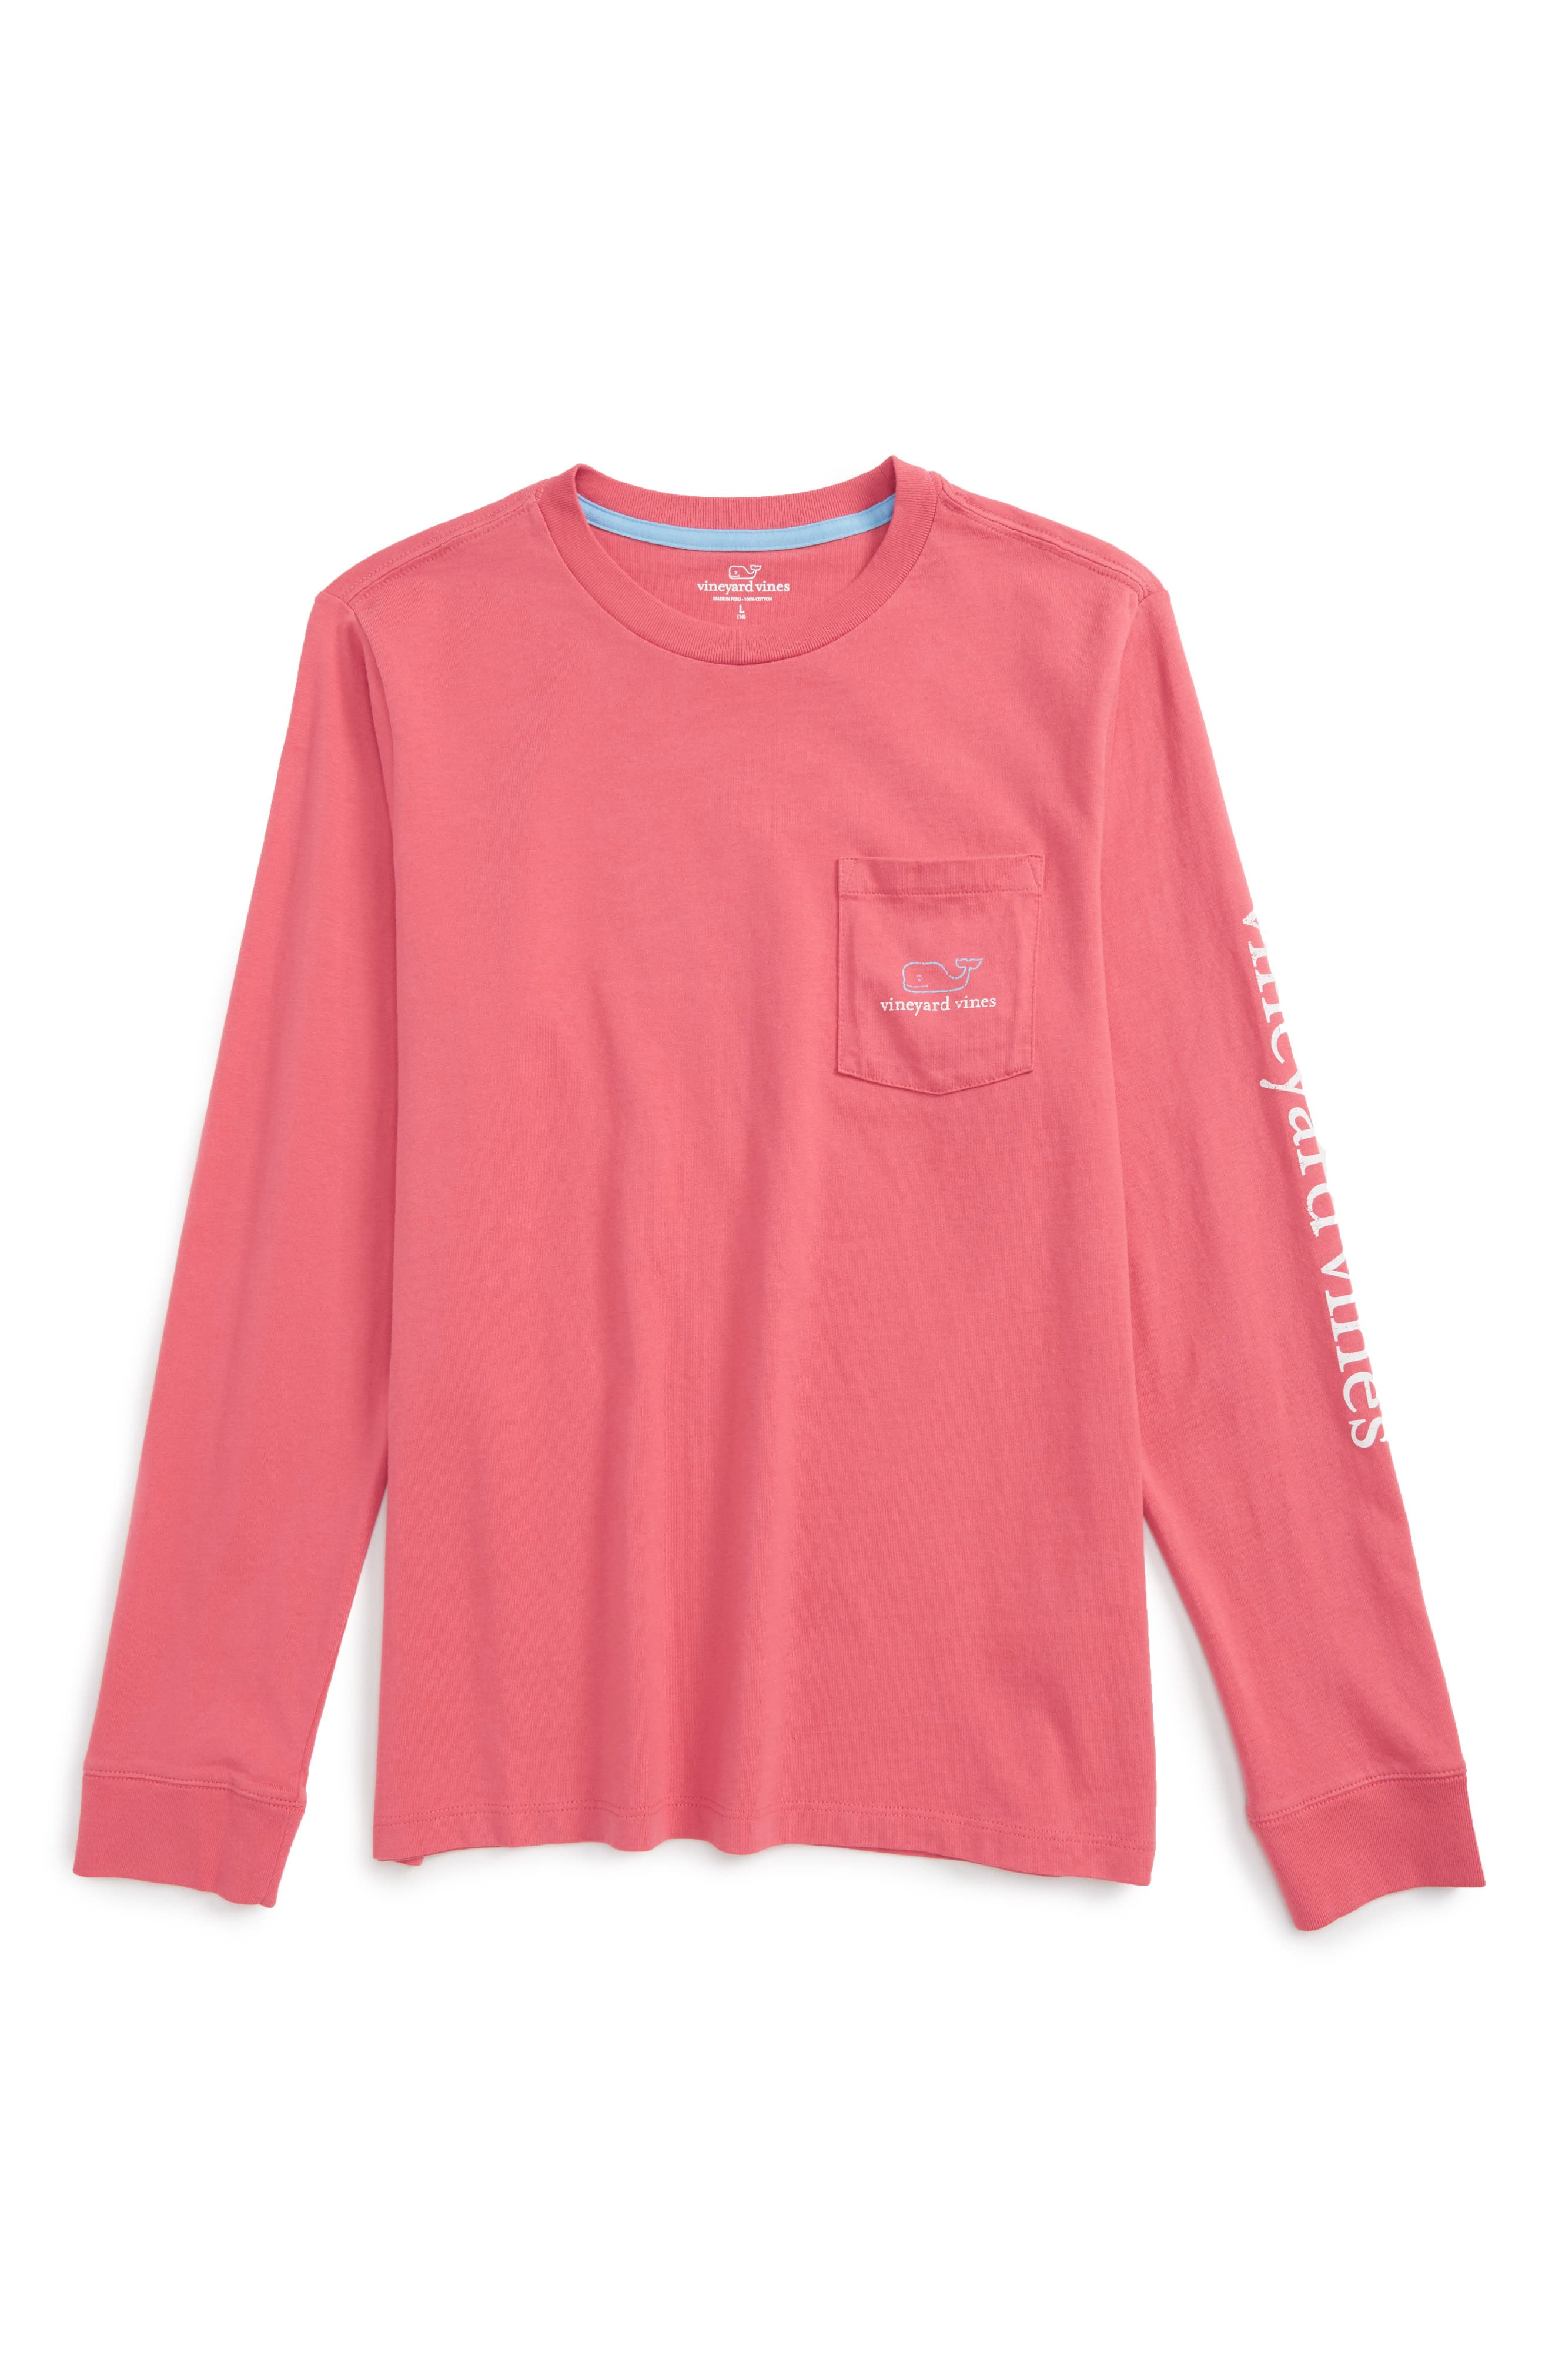 Vineyard Vines 'Vintage Whale' Long Sleeve Pocket T-Shirt (Toddler Boys, Little Boys & Big Boys)